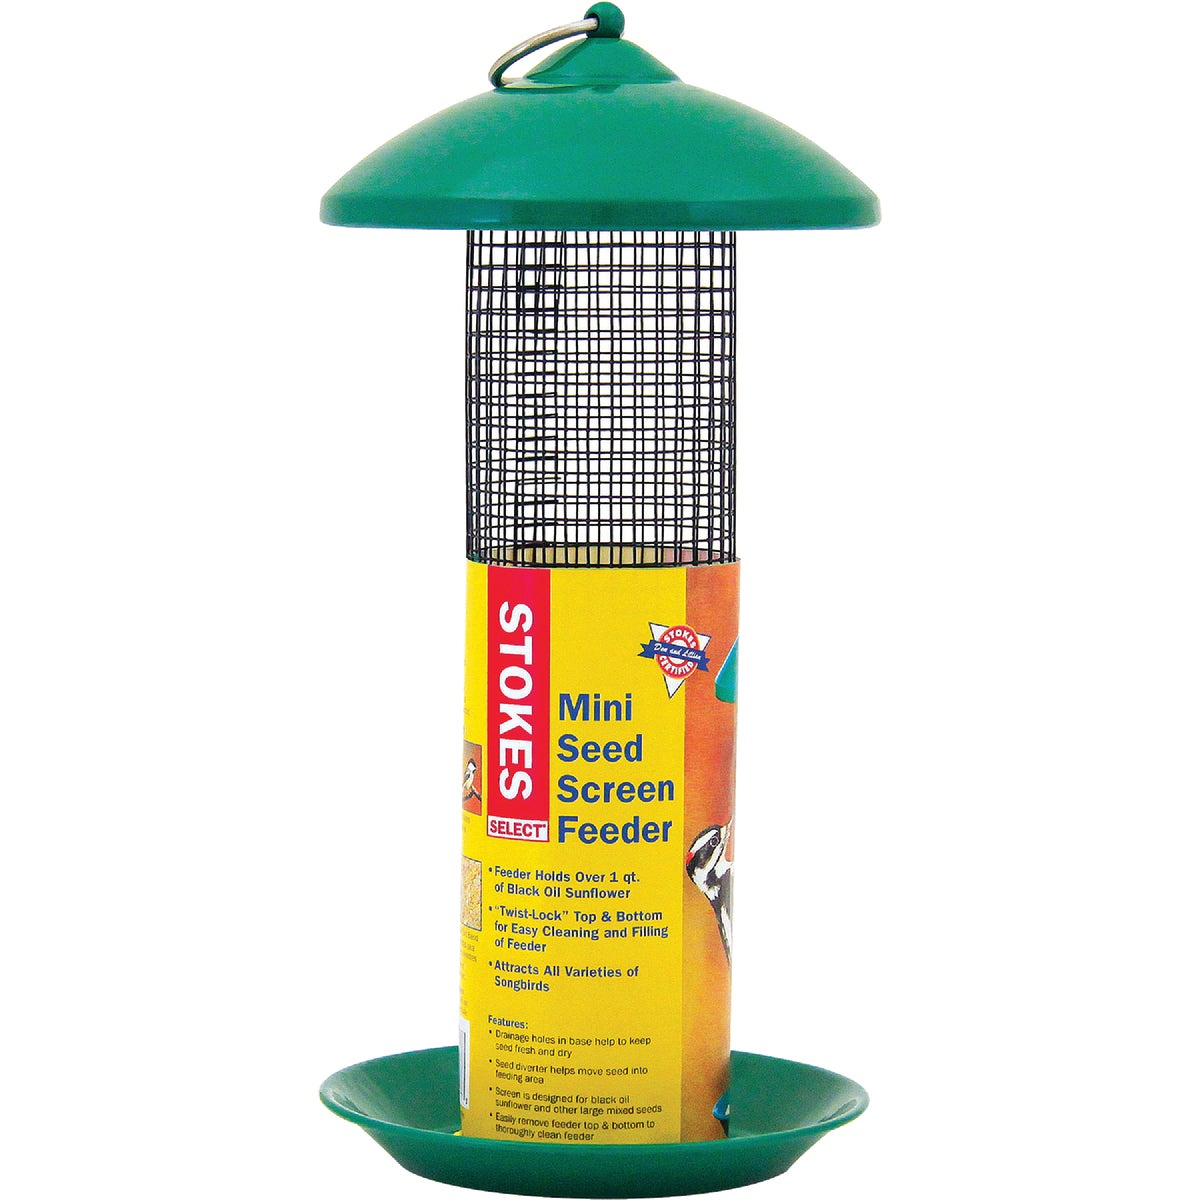 MINI SCREEN SEED FEEDER - 38177 by Hiatt Mfg